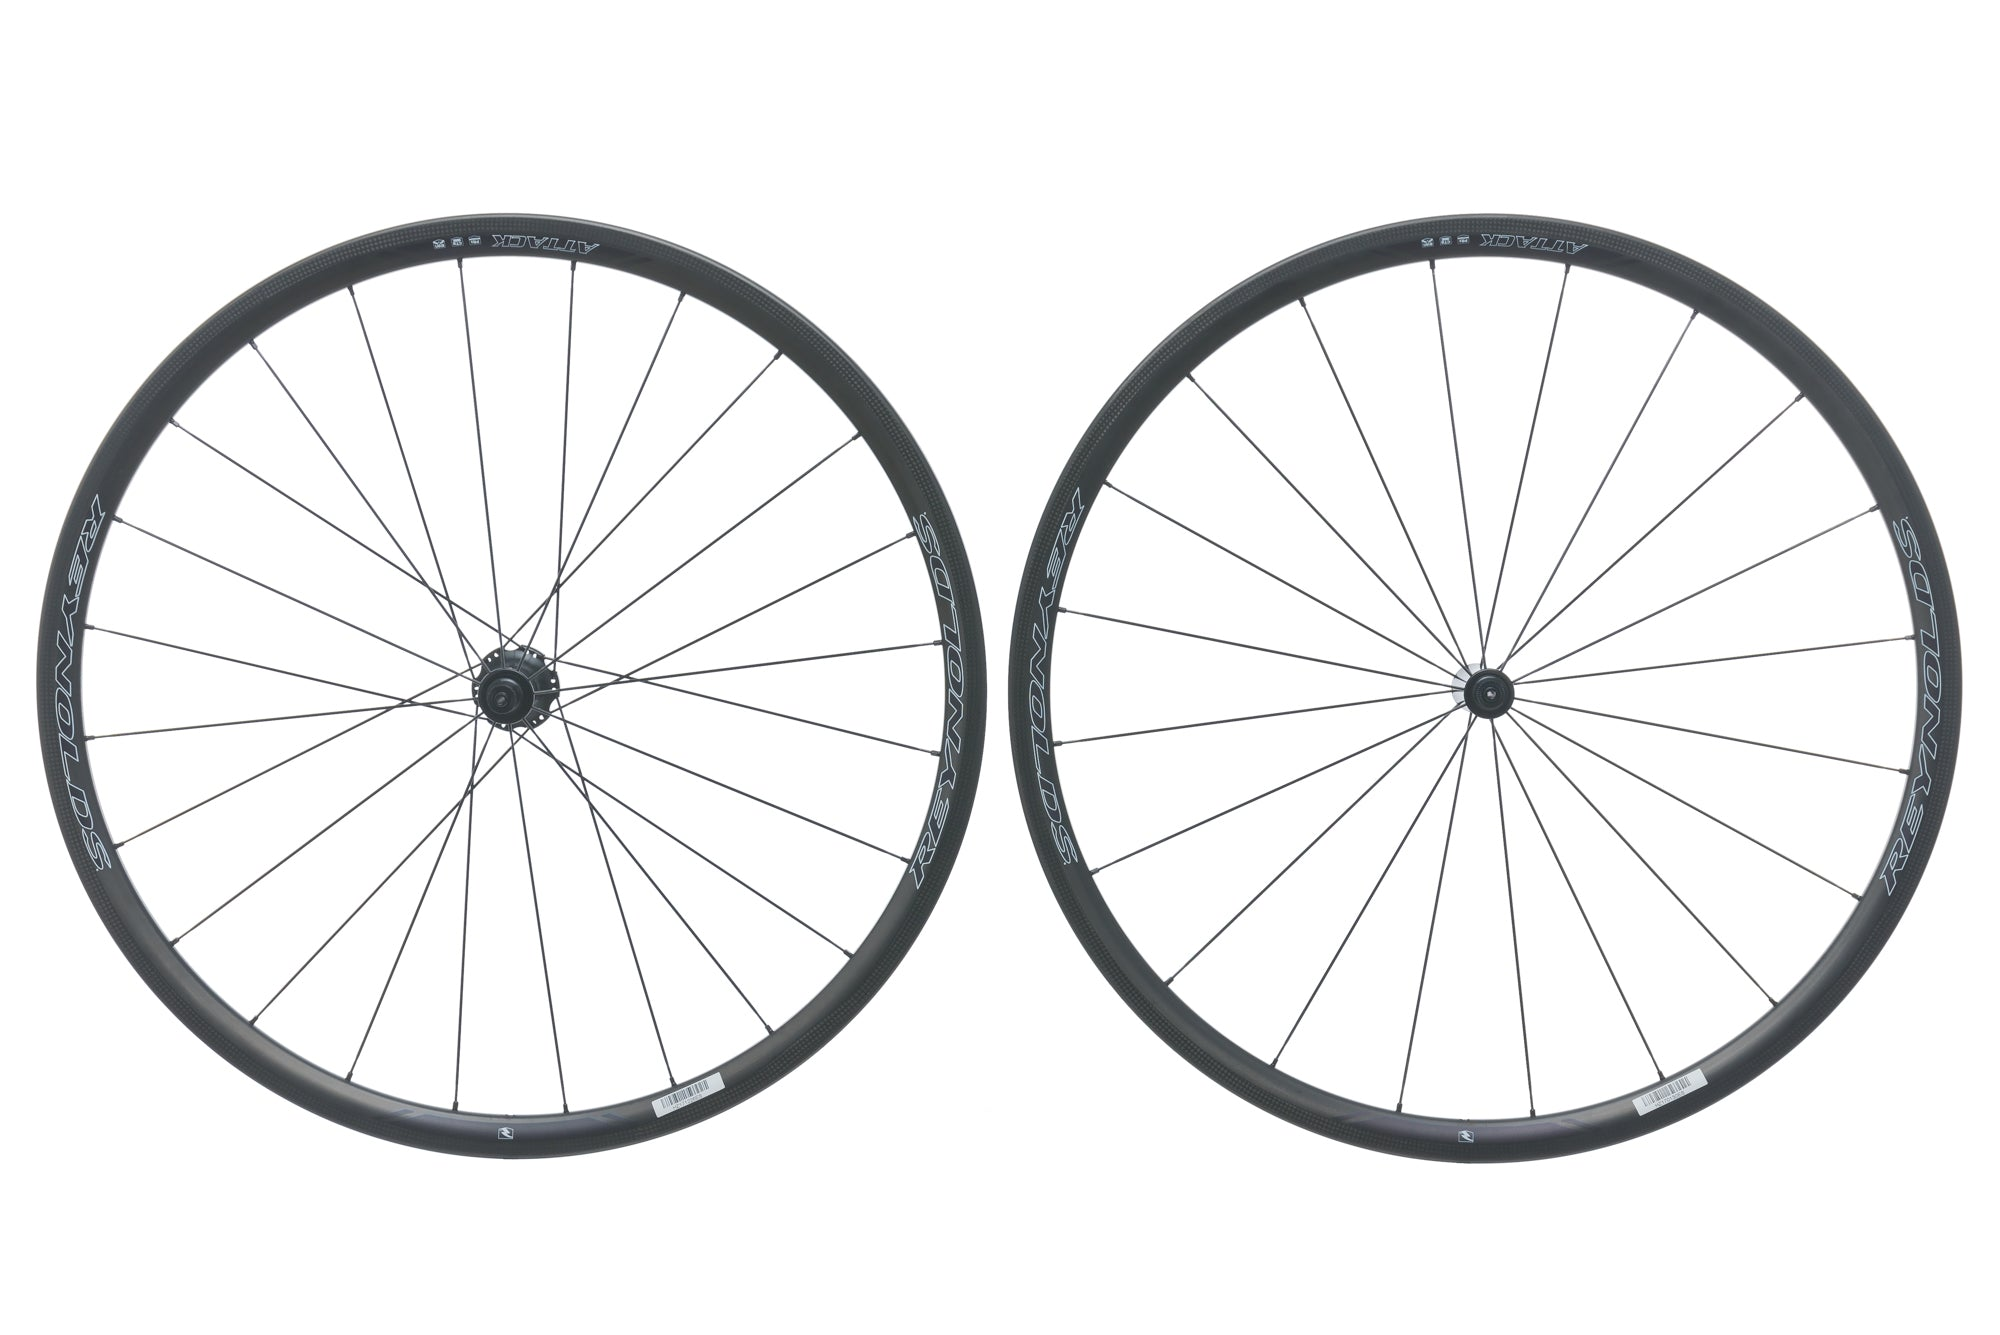 Reynolds Attack Carbon Tubeless 700c Wheelset drive side